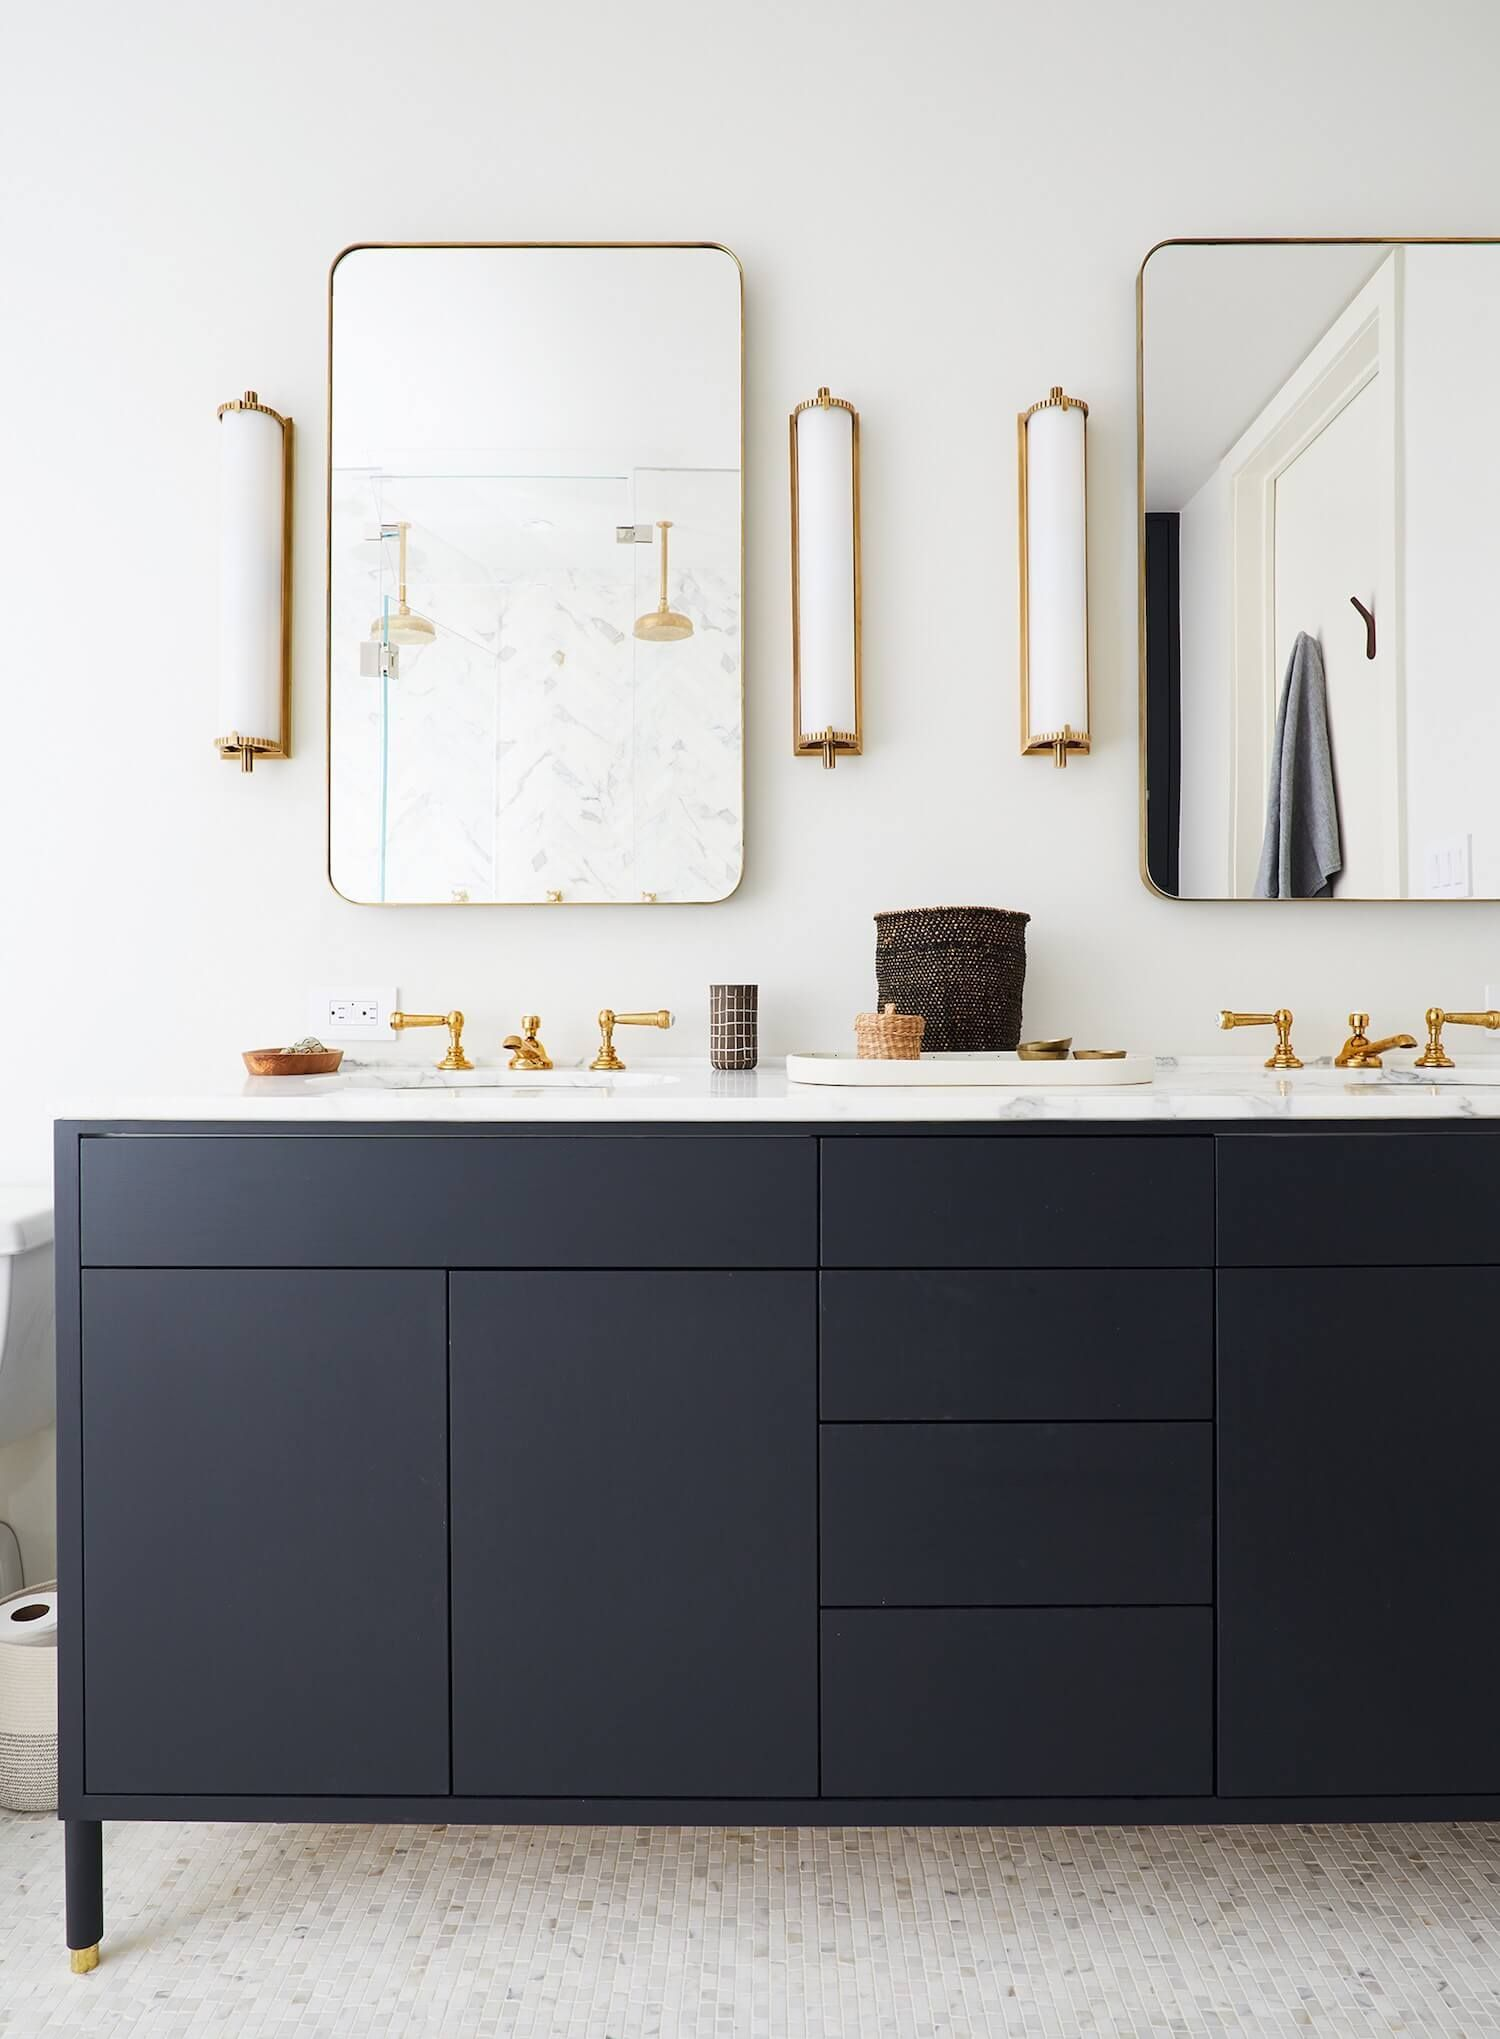 Bathroom Tribeca Loft By Sheep Stone And Frances Mildred Architects Est Living